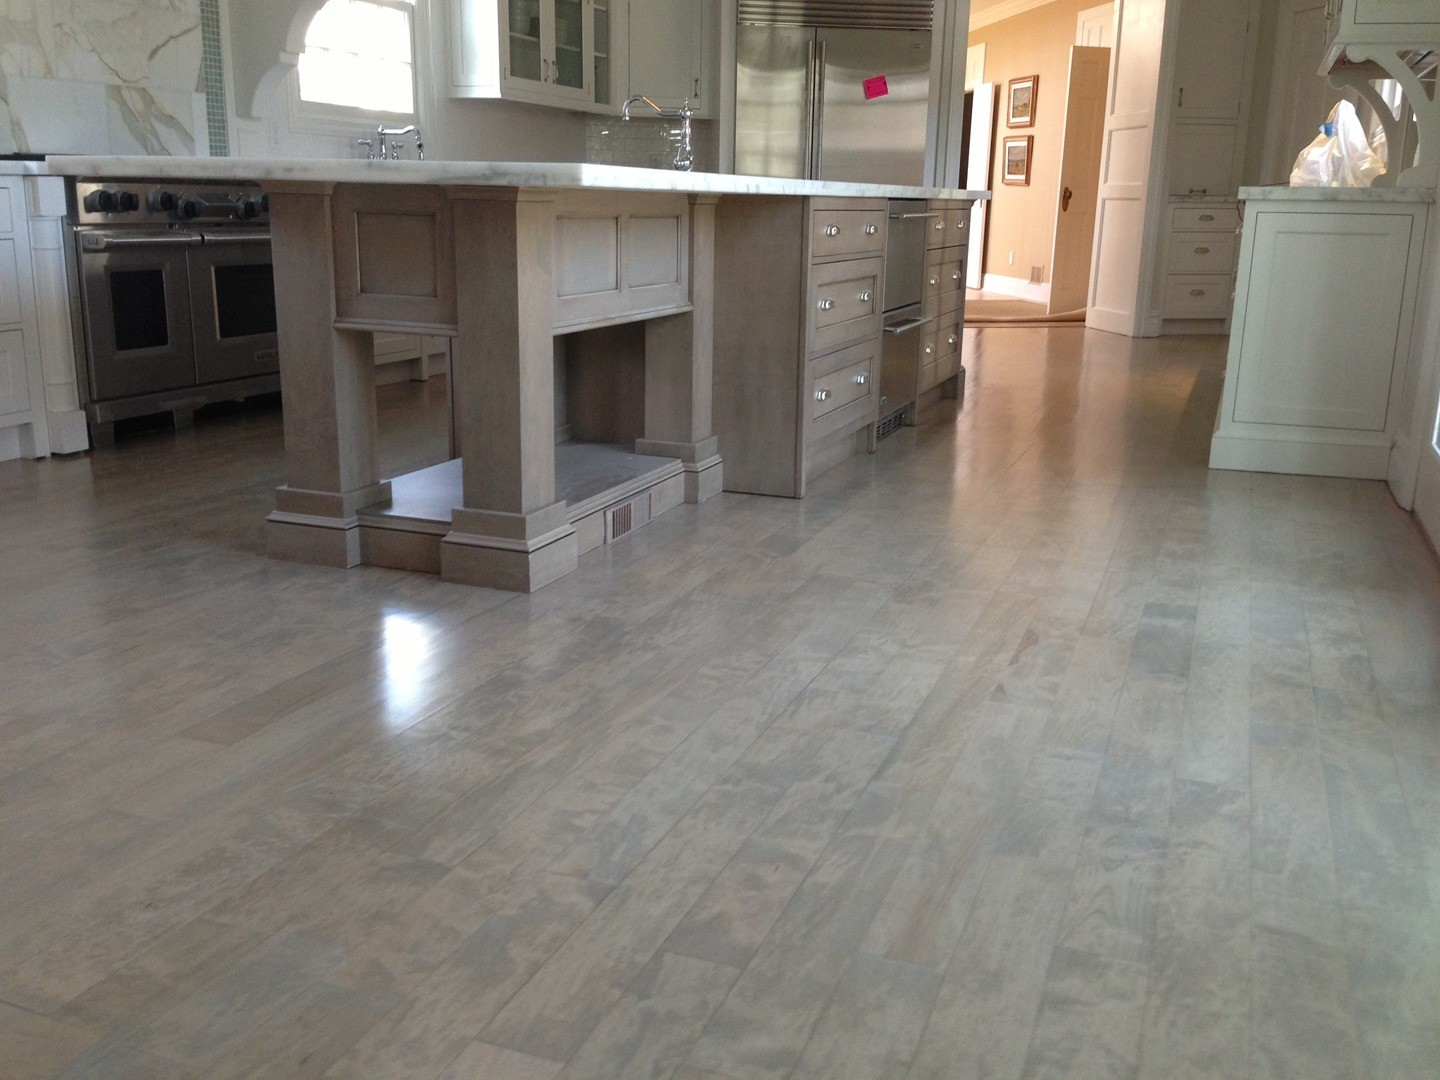 how expensive is it to refinish hardwood floors of 19 awesome how to restore hardwood floors pictures dizpos com within how to restore hardwood floors awesome j r hardwood floors l l c home collection of 19 awesome how